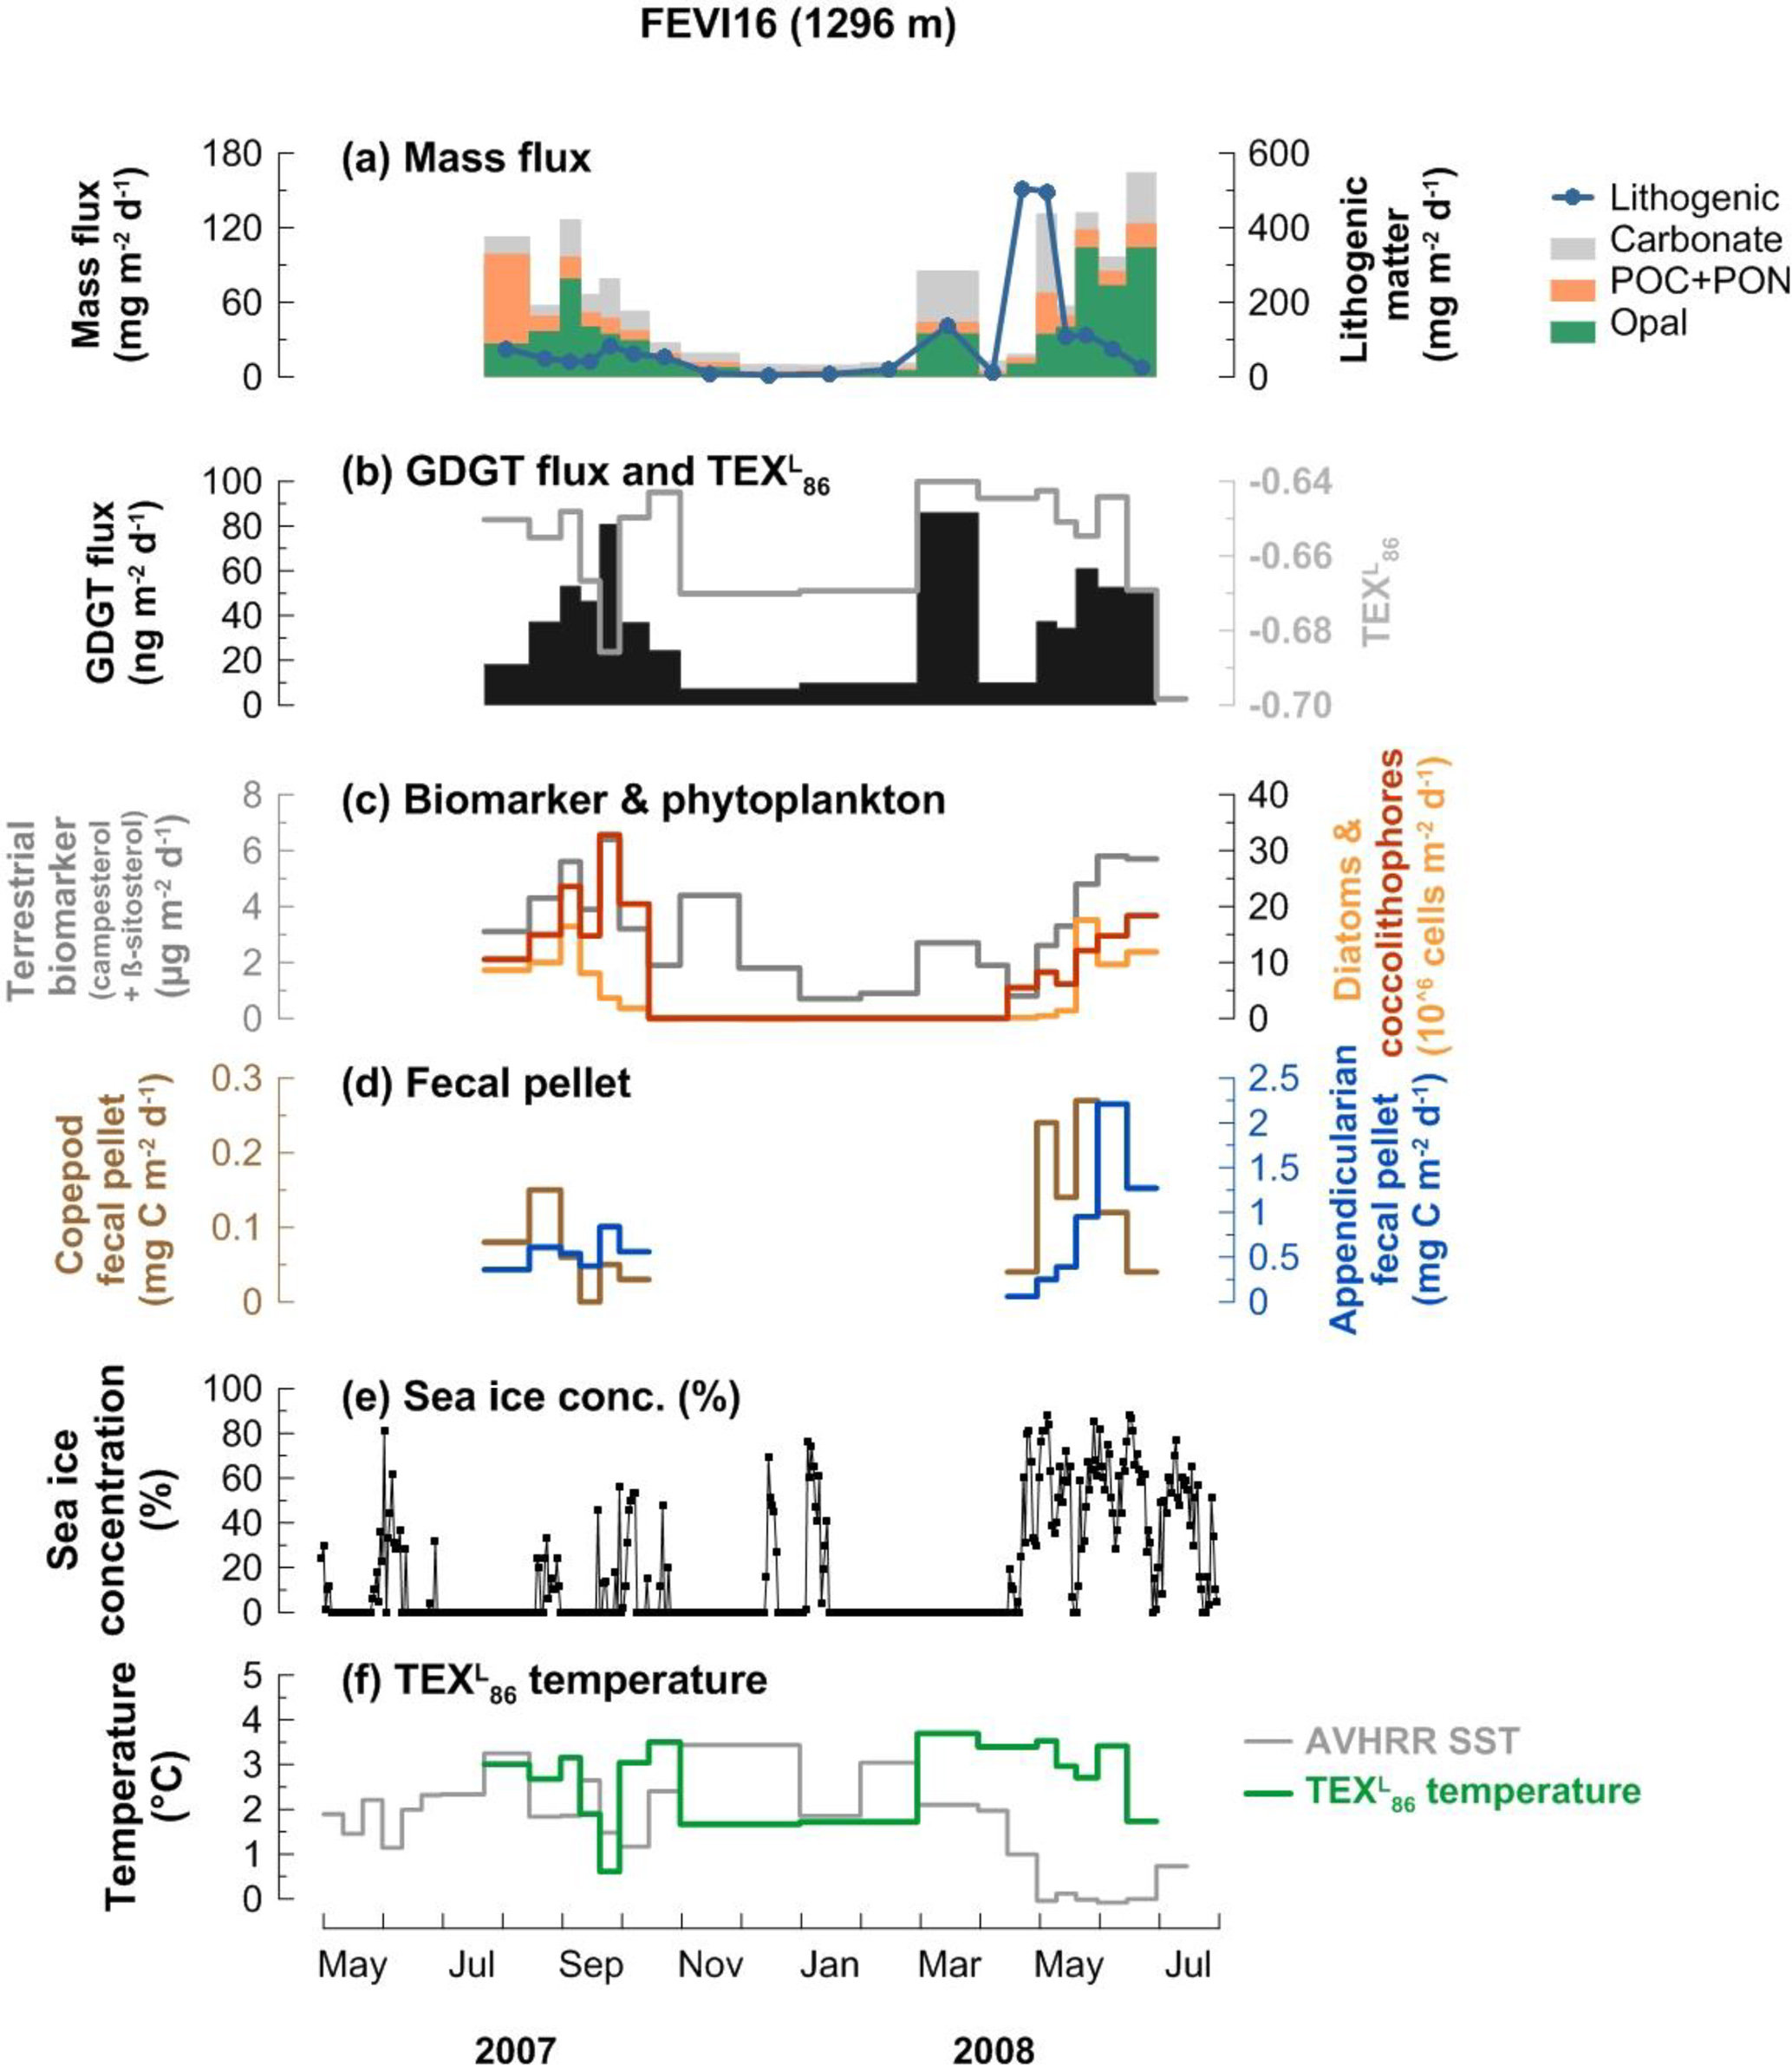 BG - Seasonality of archaeal lipid flux and GDGT-based